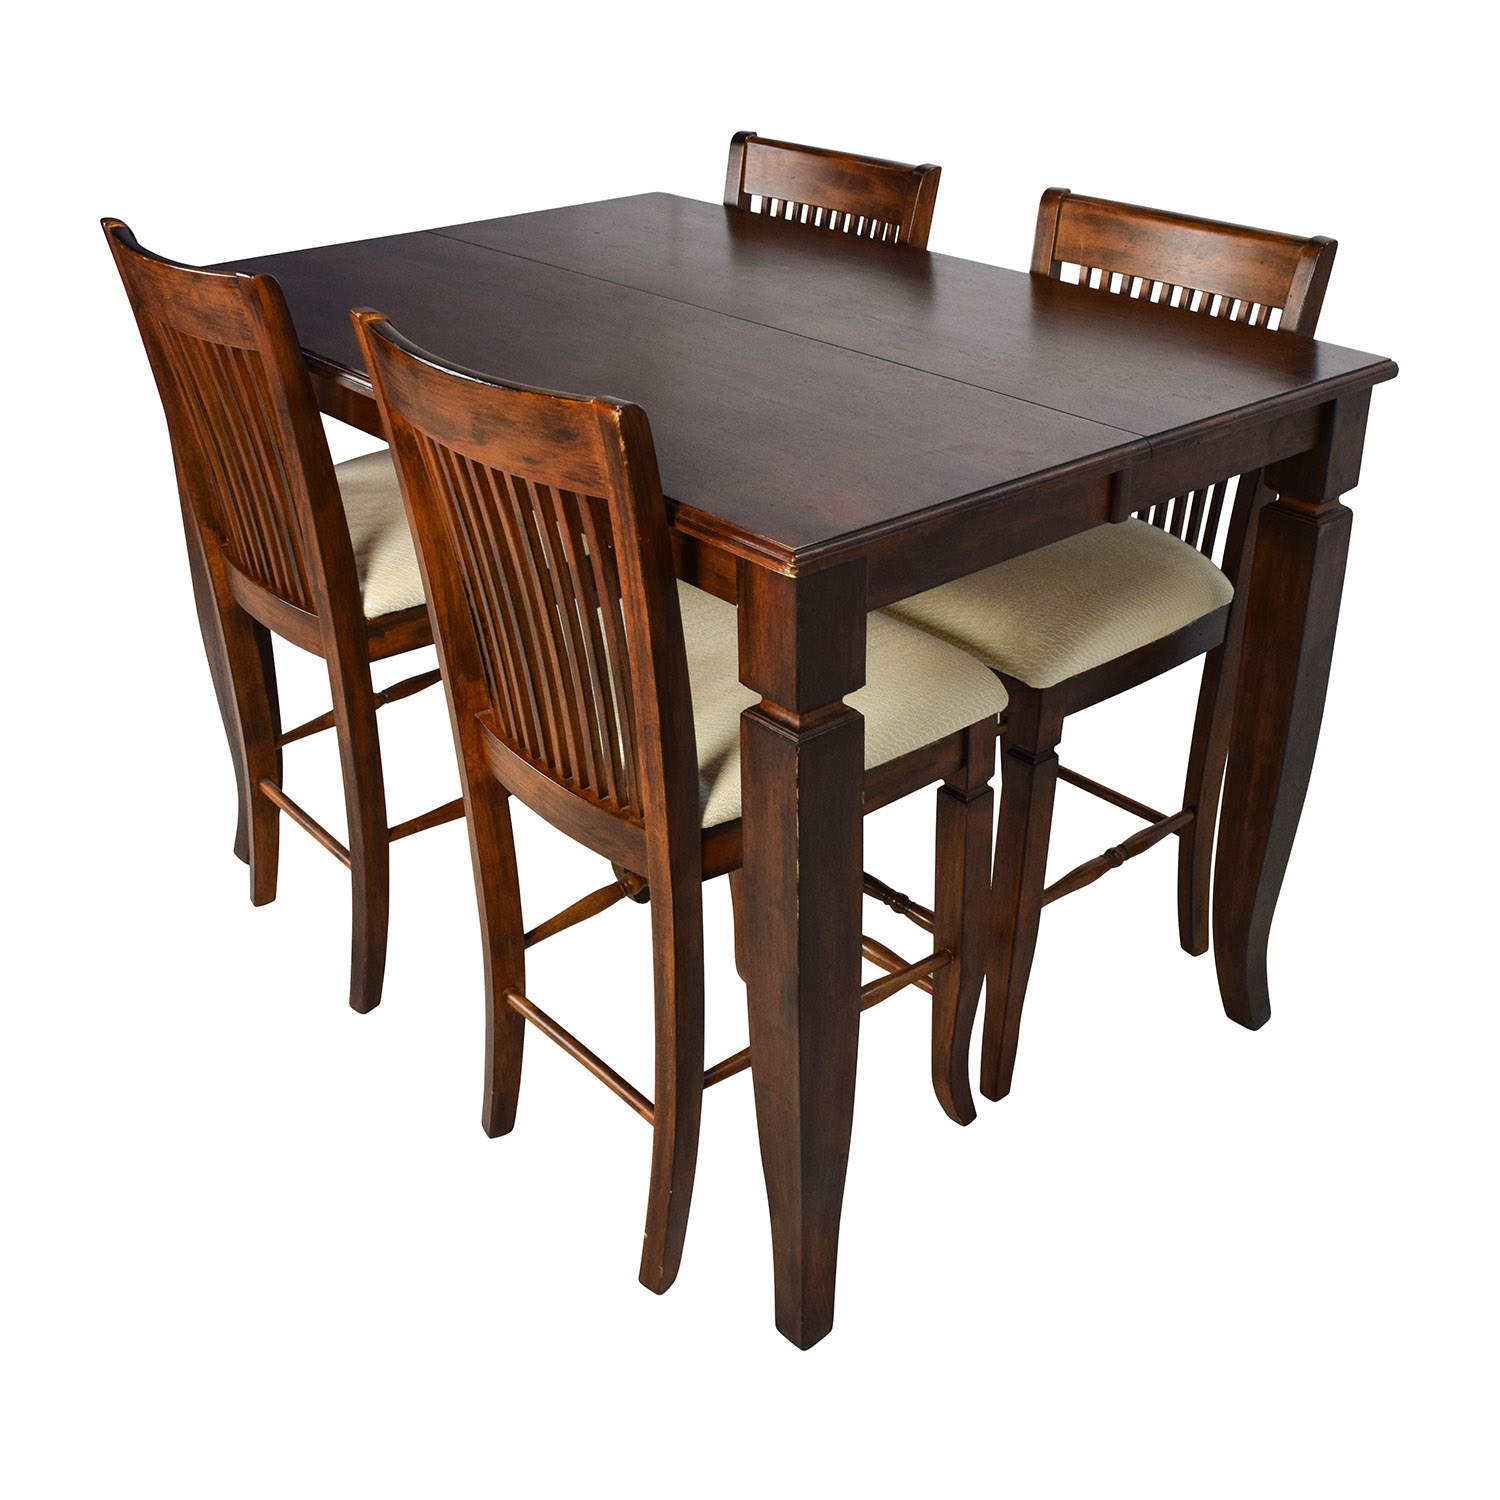 dining table with bench backrest images